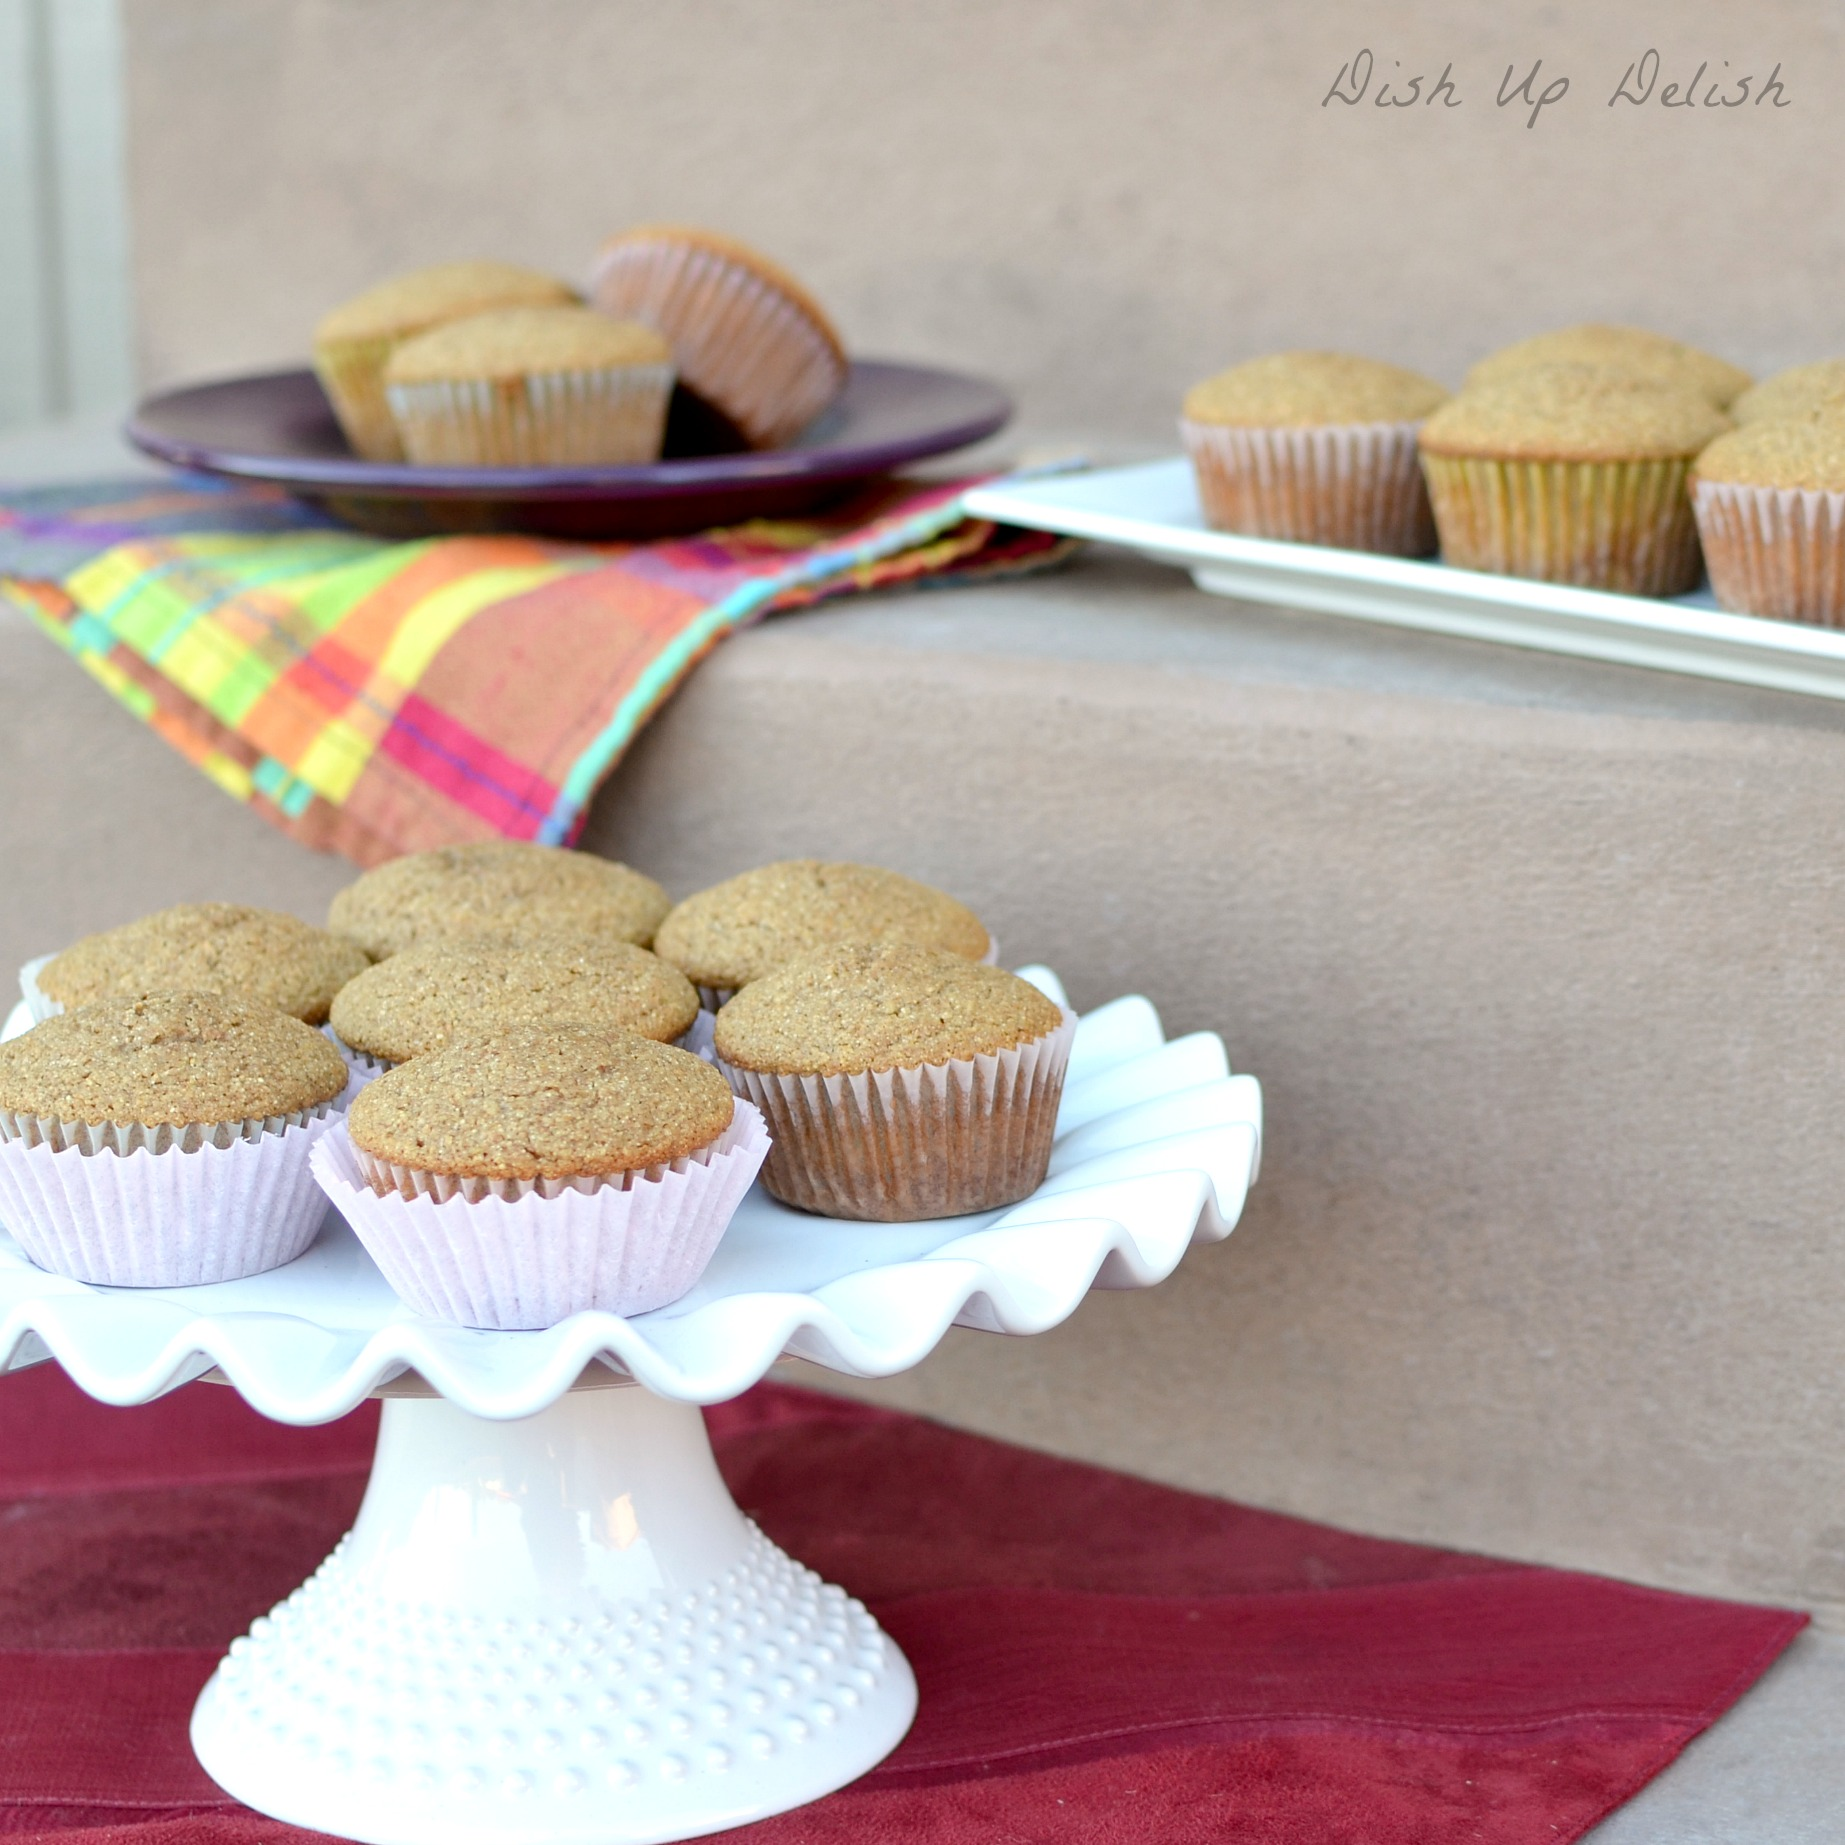 Brown Sugar and Whole Wheat Muffins Dish Up Delish